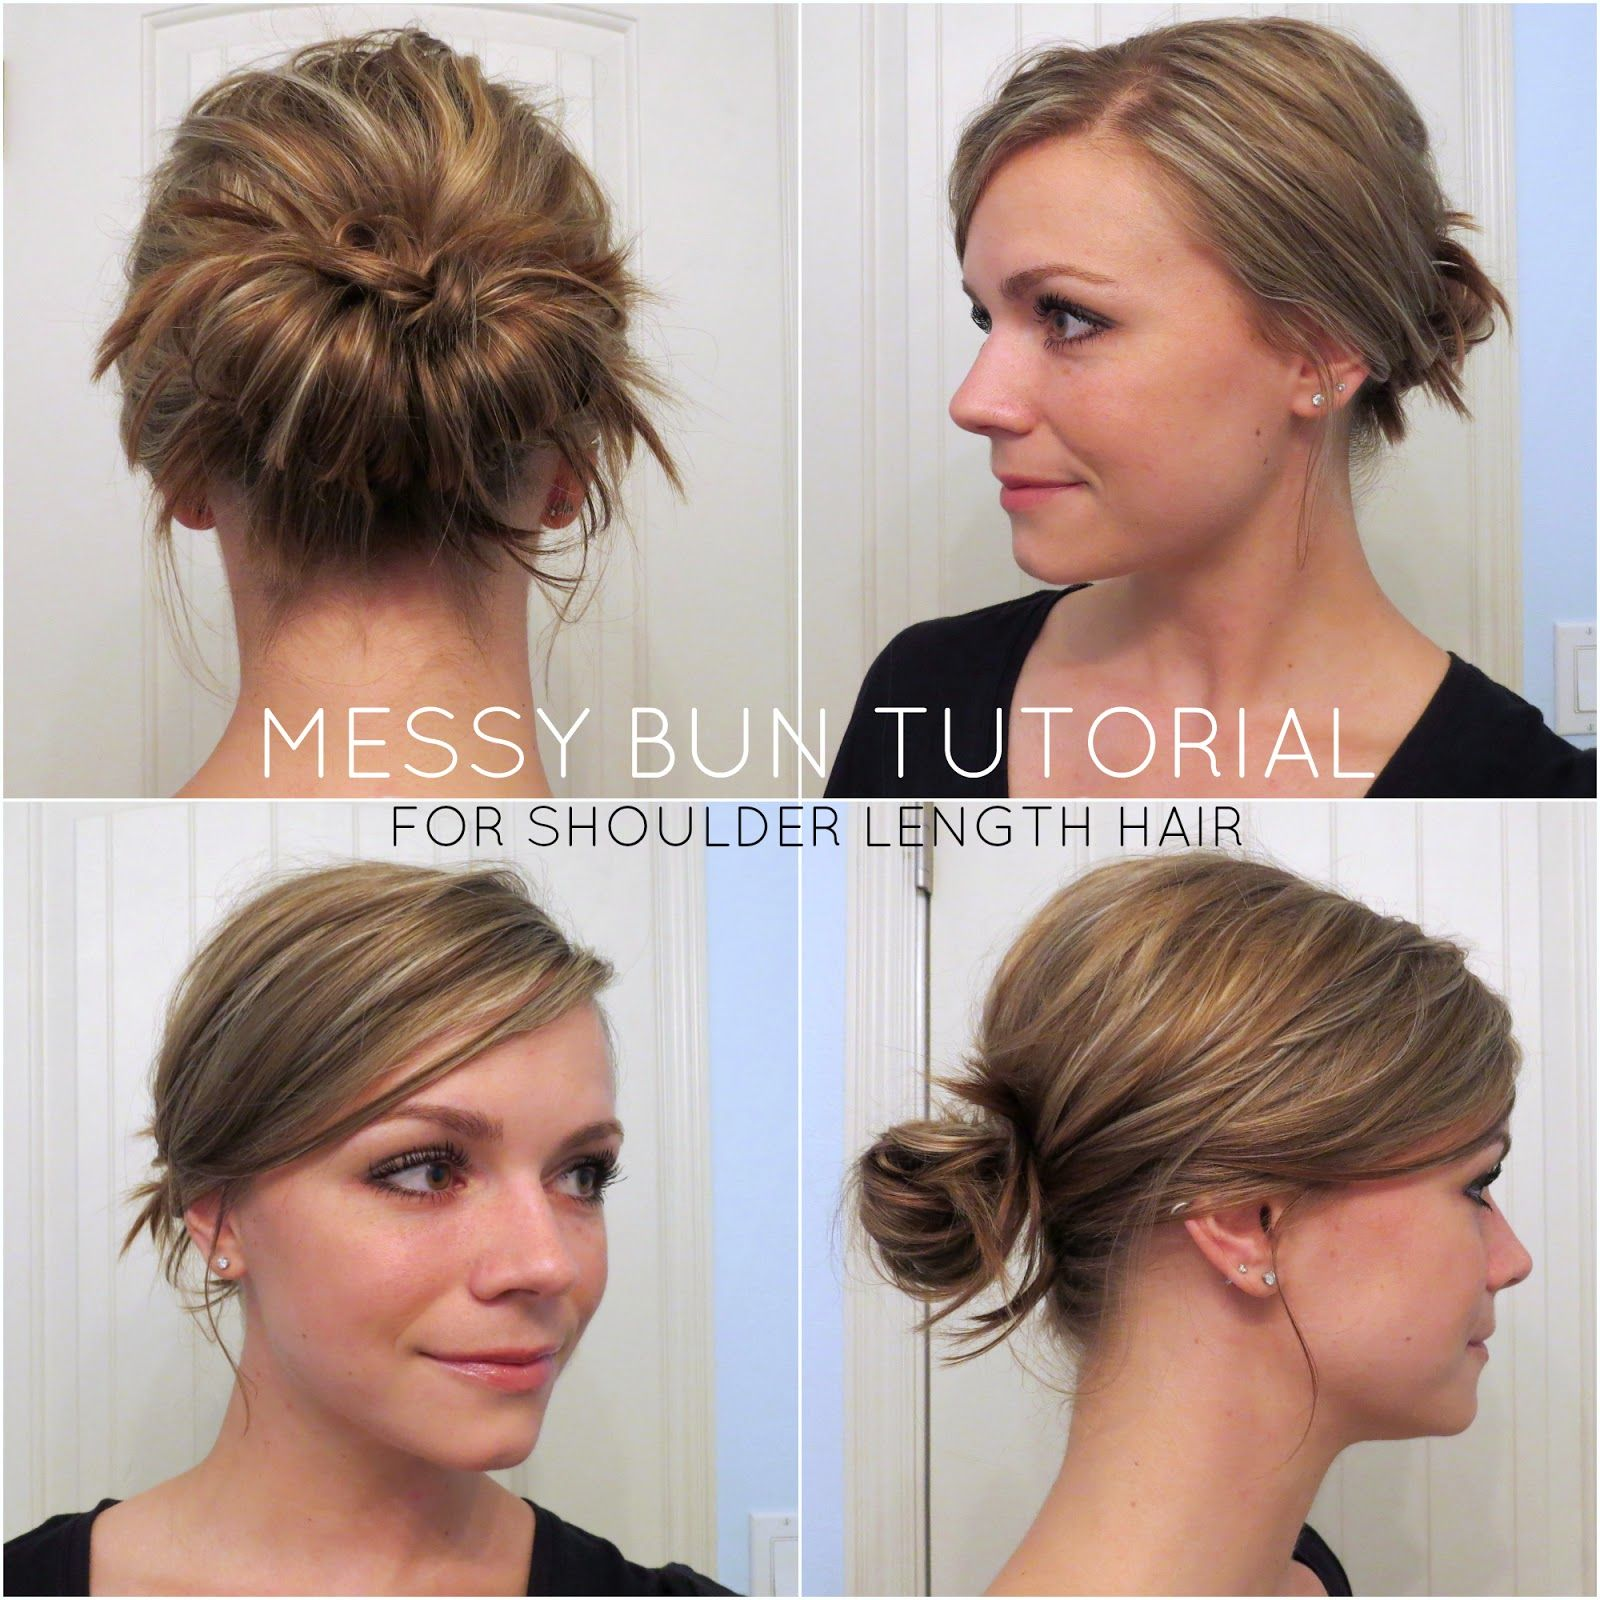 Messy Bun Tutorial For Shoulder Length Hair Chic Messy Bun Messy Bun For Short Hair Messy Bun For Short Hair Hair Bun Tutorial Easy Messy Hairstyles